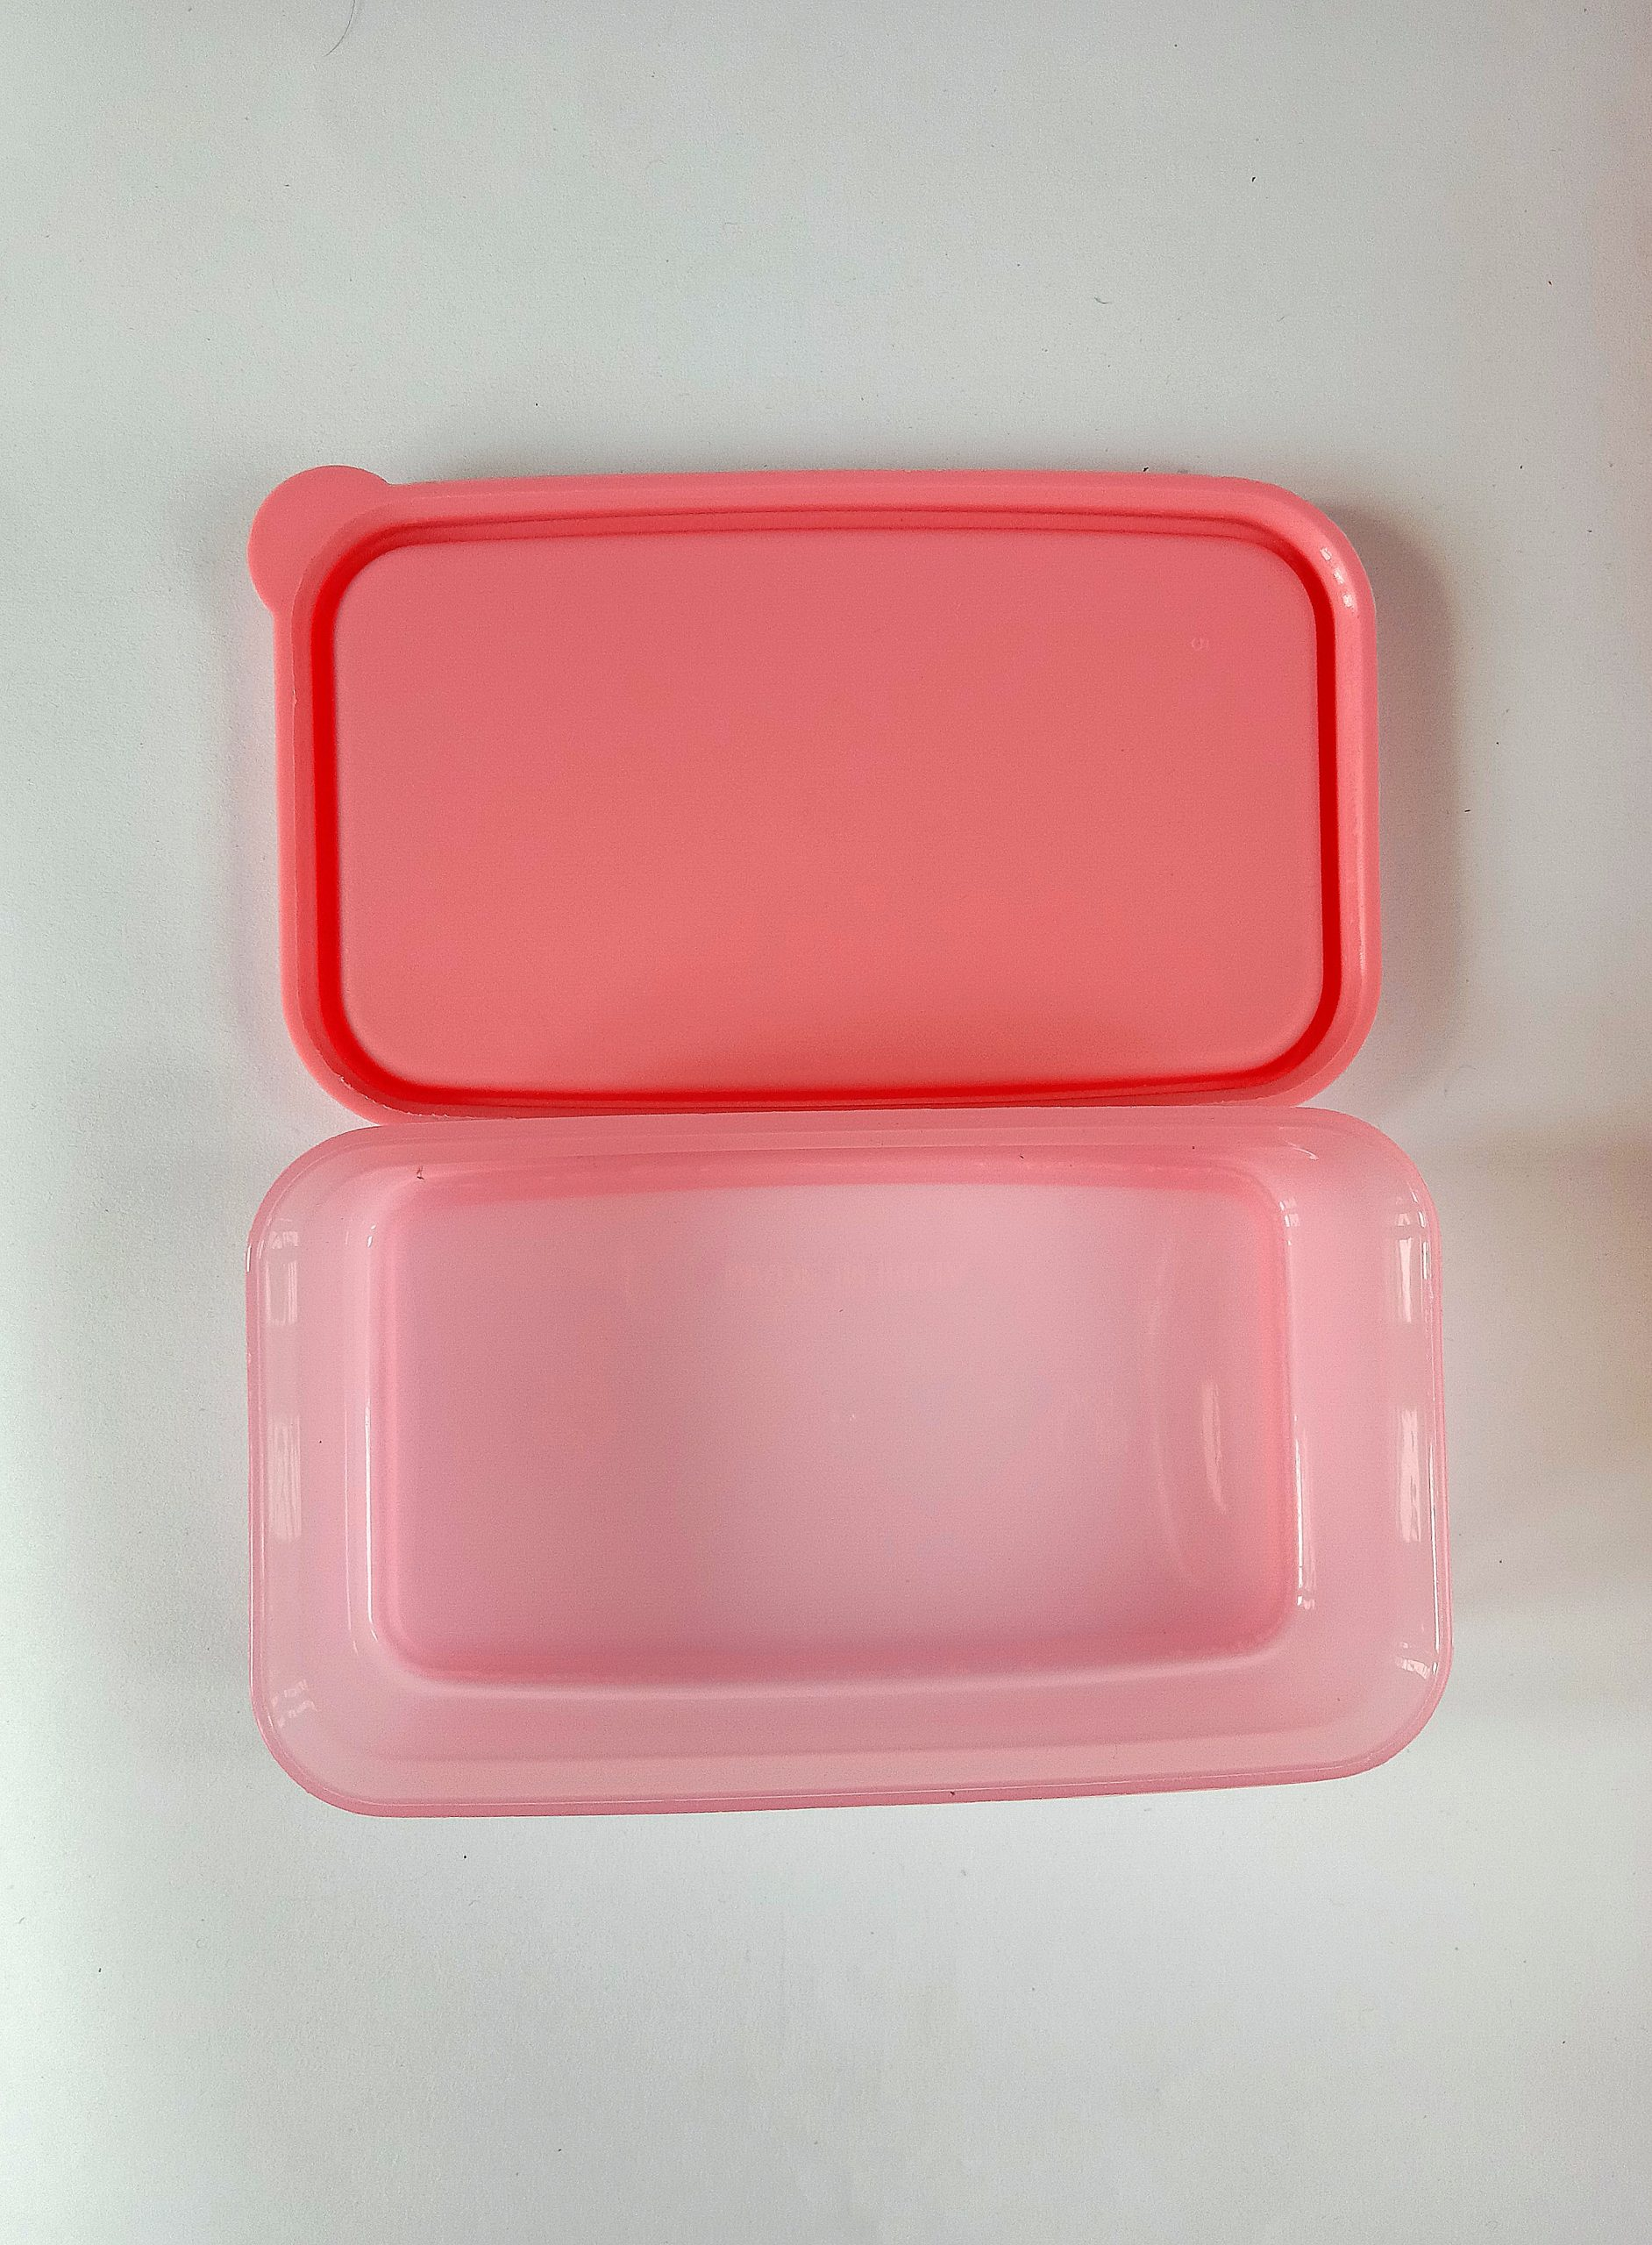 A tiffin box